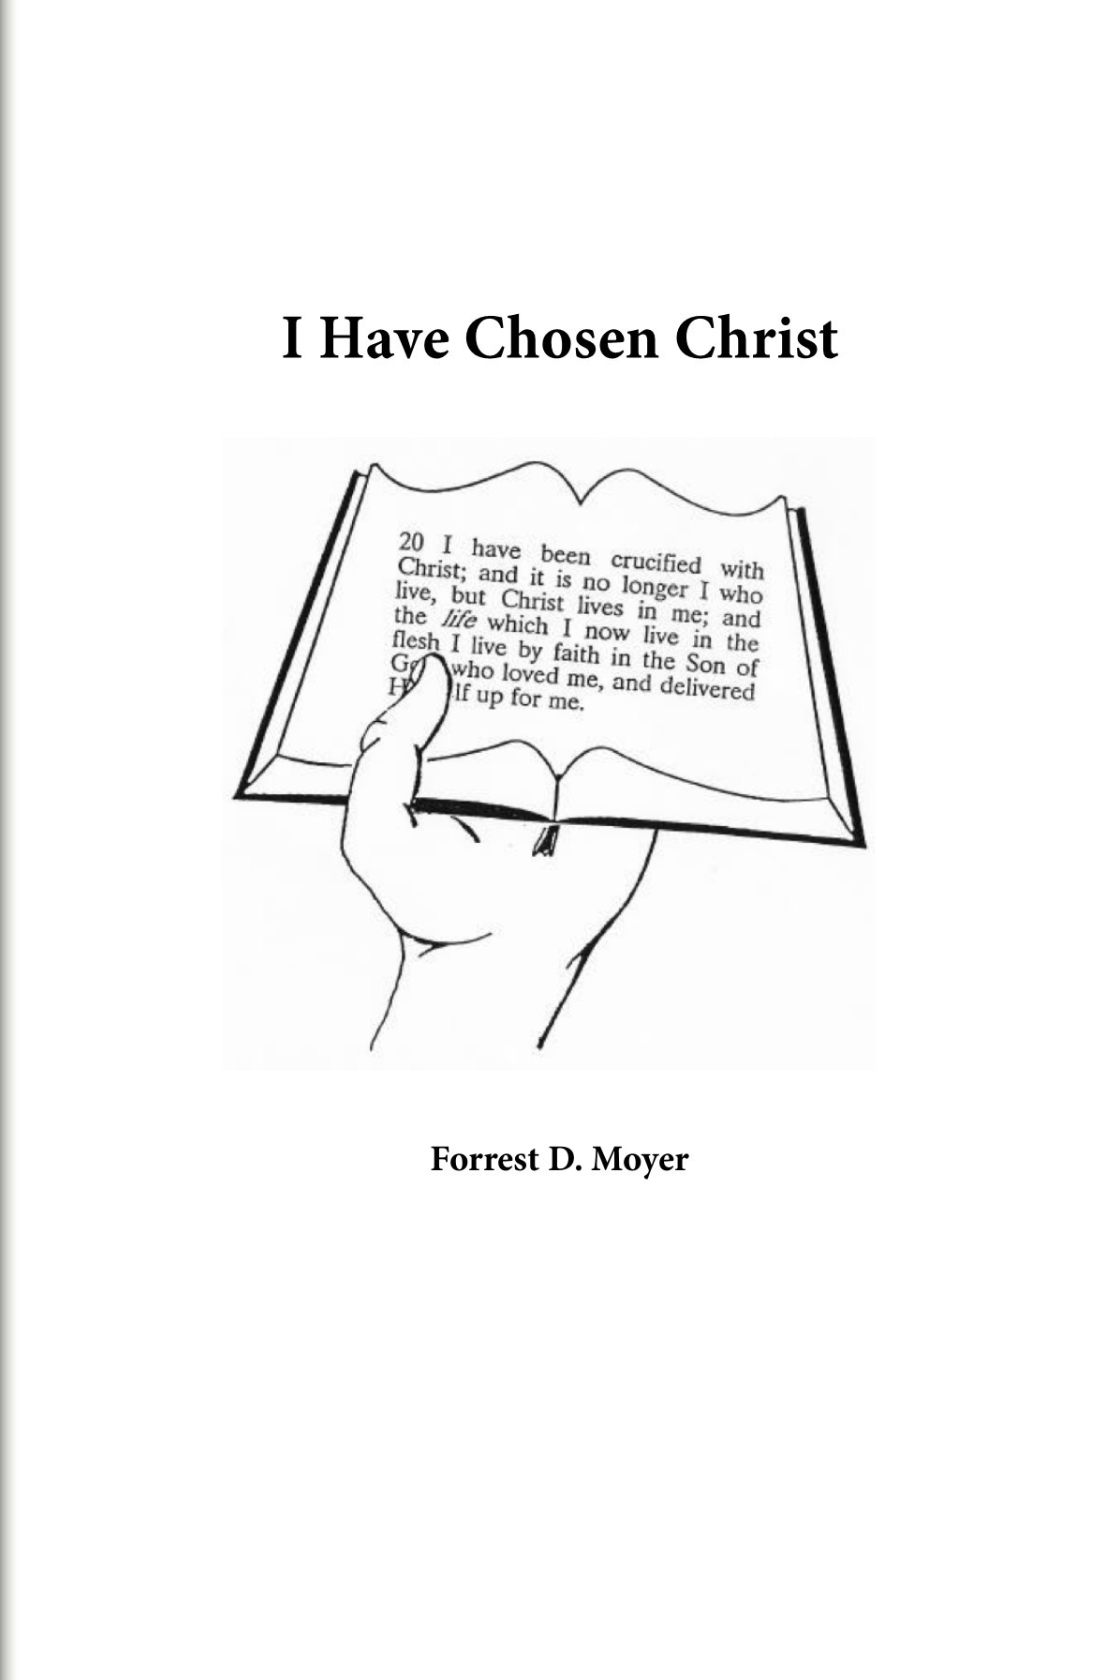 I Have Chosen Christ